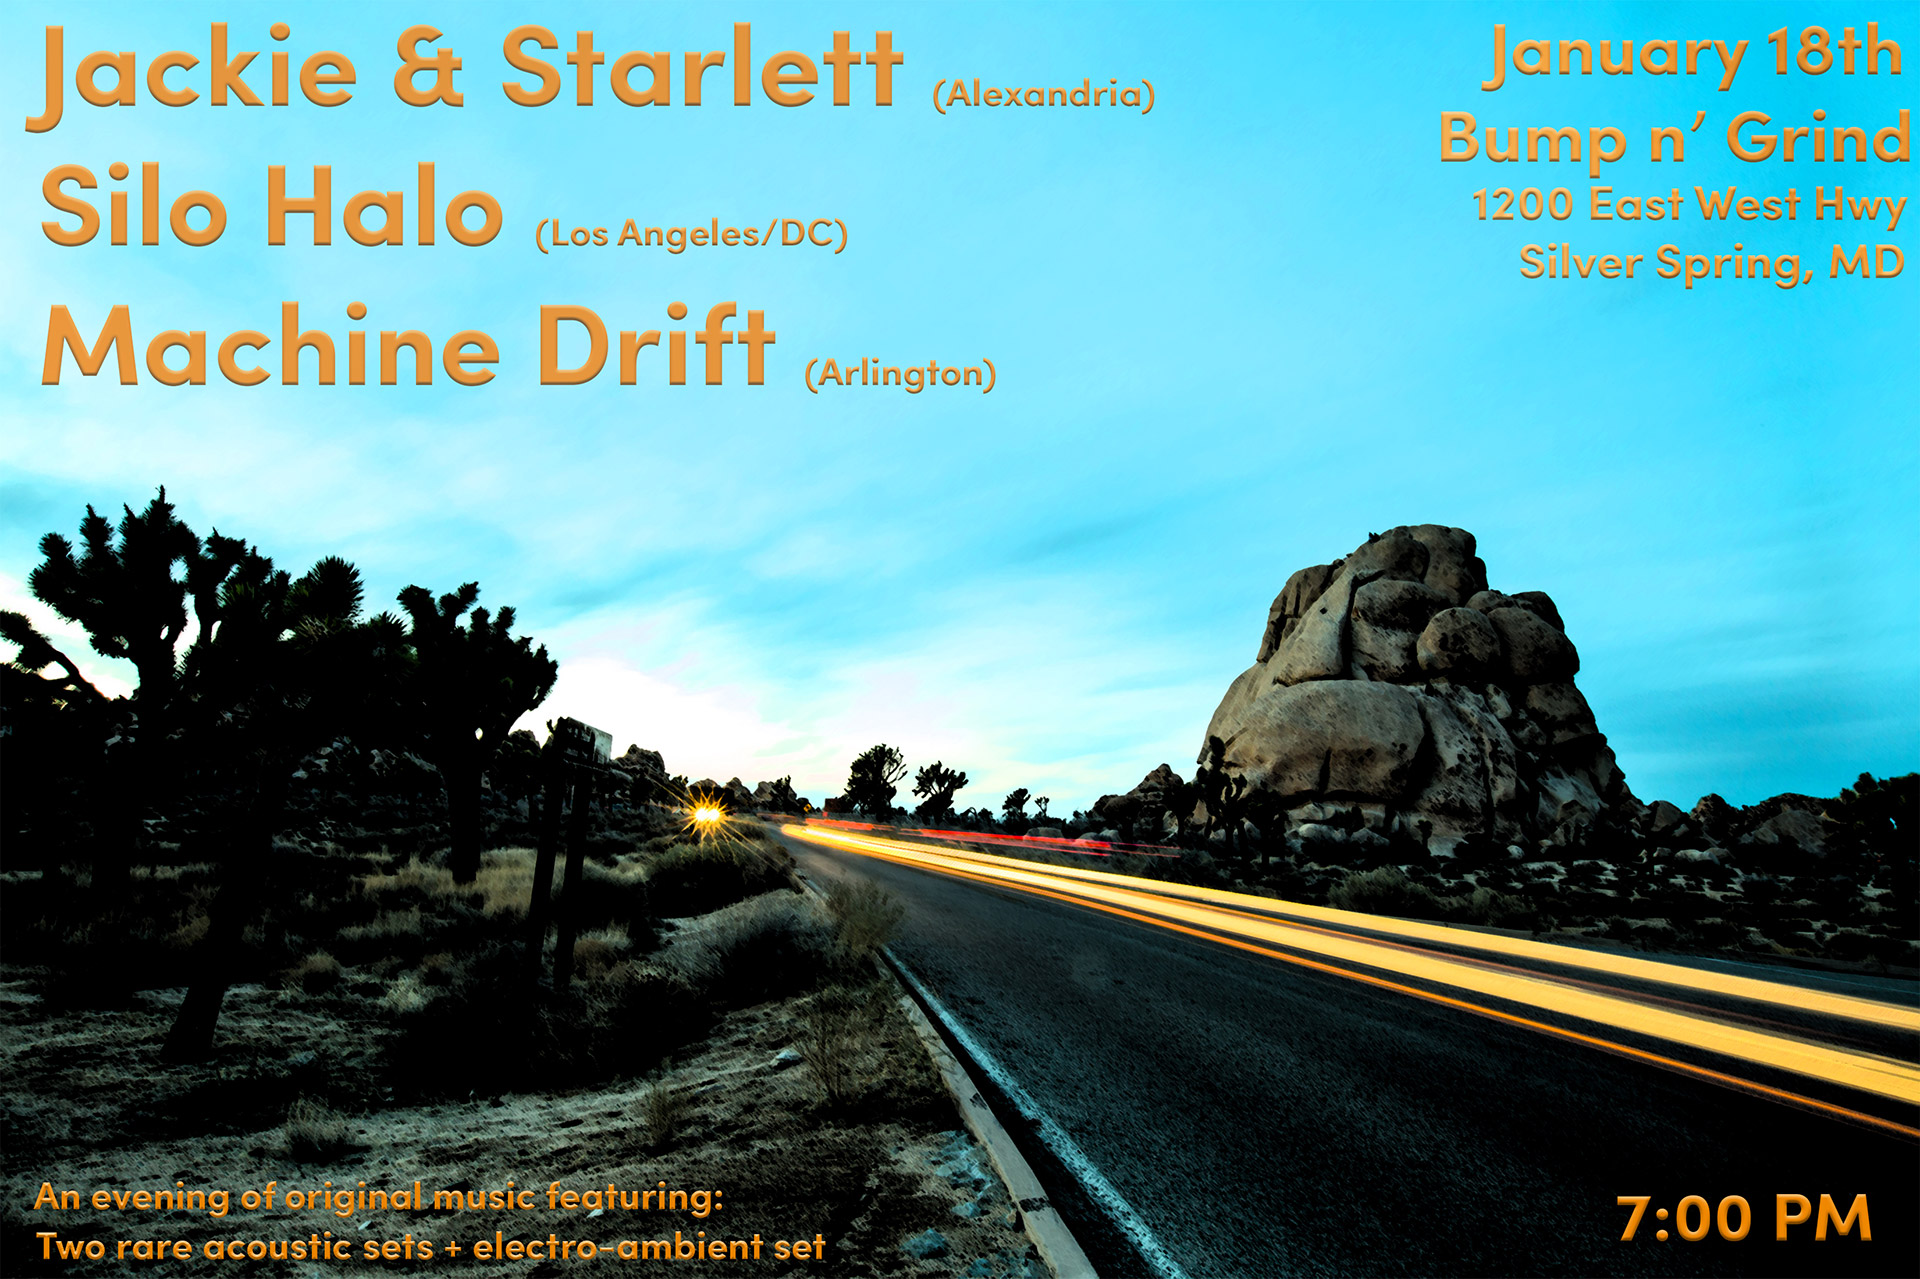 Jackie +Starlett - Silo Halo - Machine Drift - Jan 18th